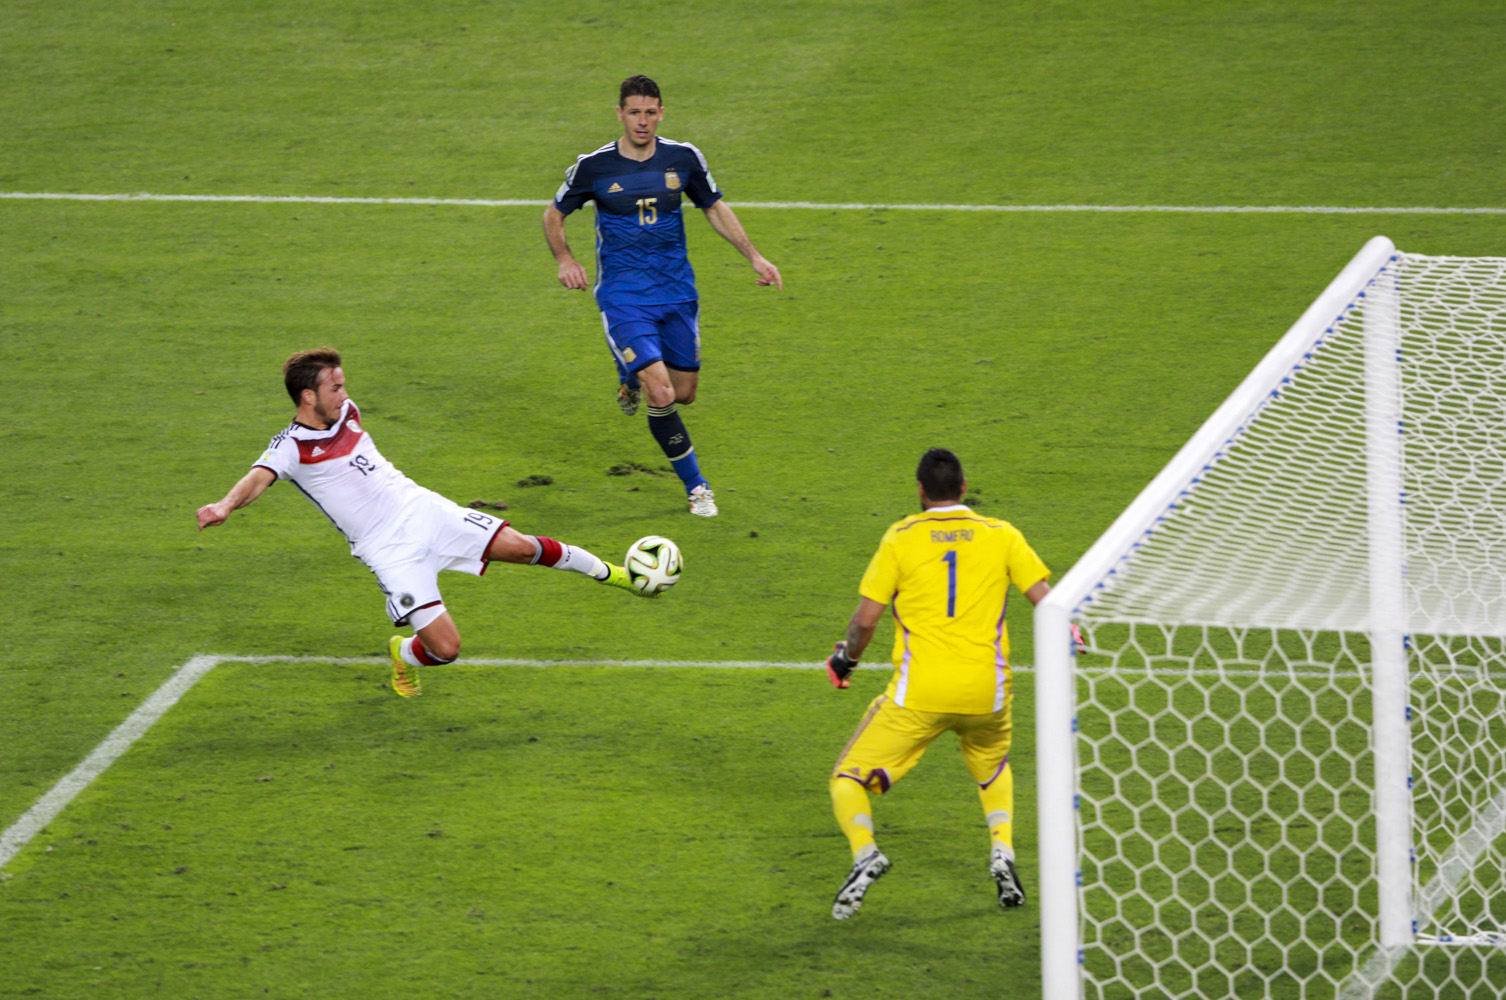 germany_and_argentina_face_off_in_the_final_of_the_world_cup_2014_-2014-07-13_6.jpg